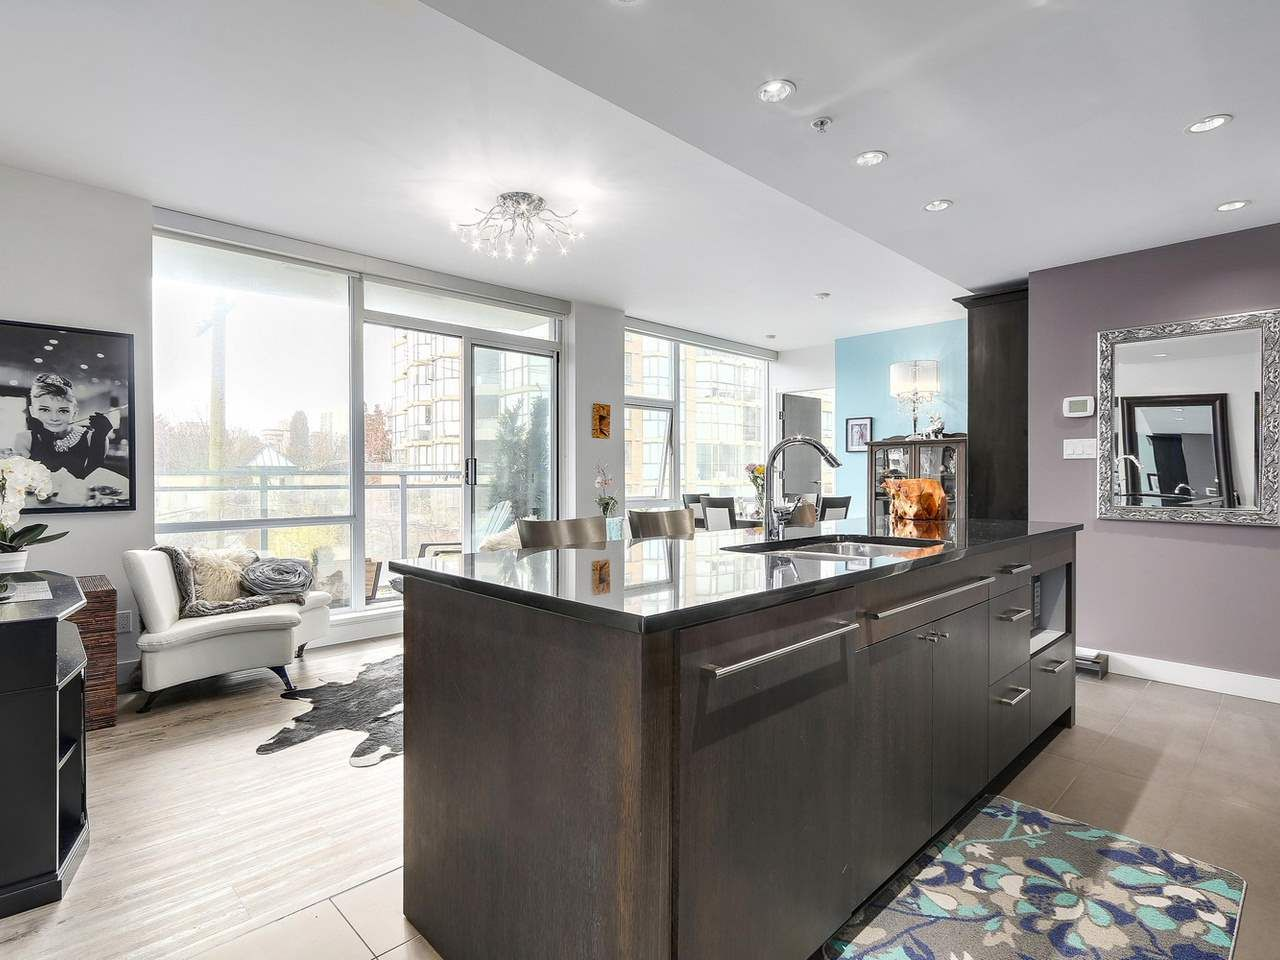 Photo 10: Photos: 401 1455 HOWE STREET in Vancouver: Yaletown Condo for sale (Vancouver West)  : MLS®# R2145939